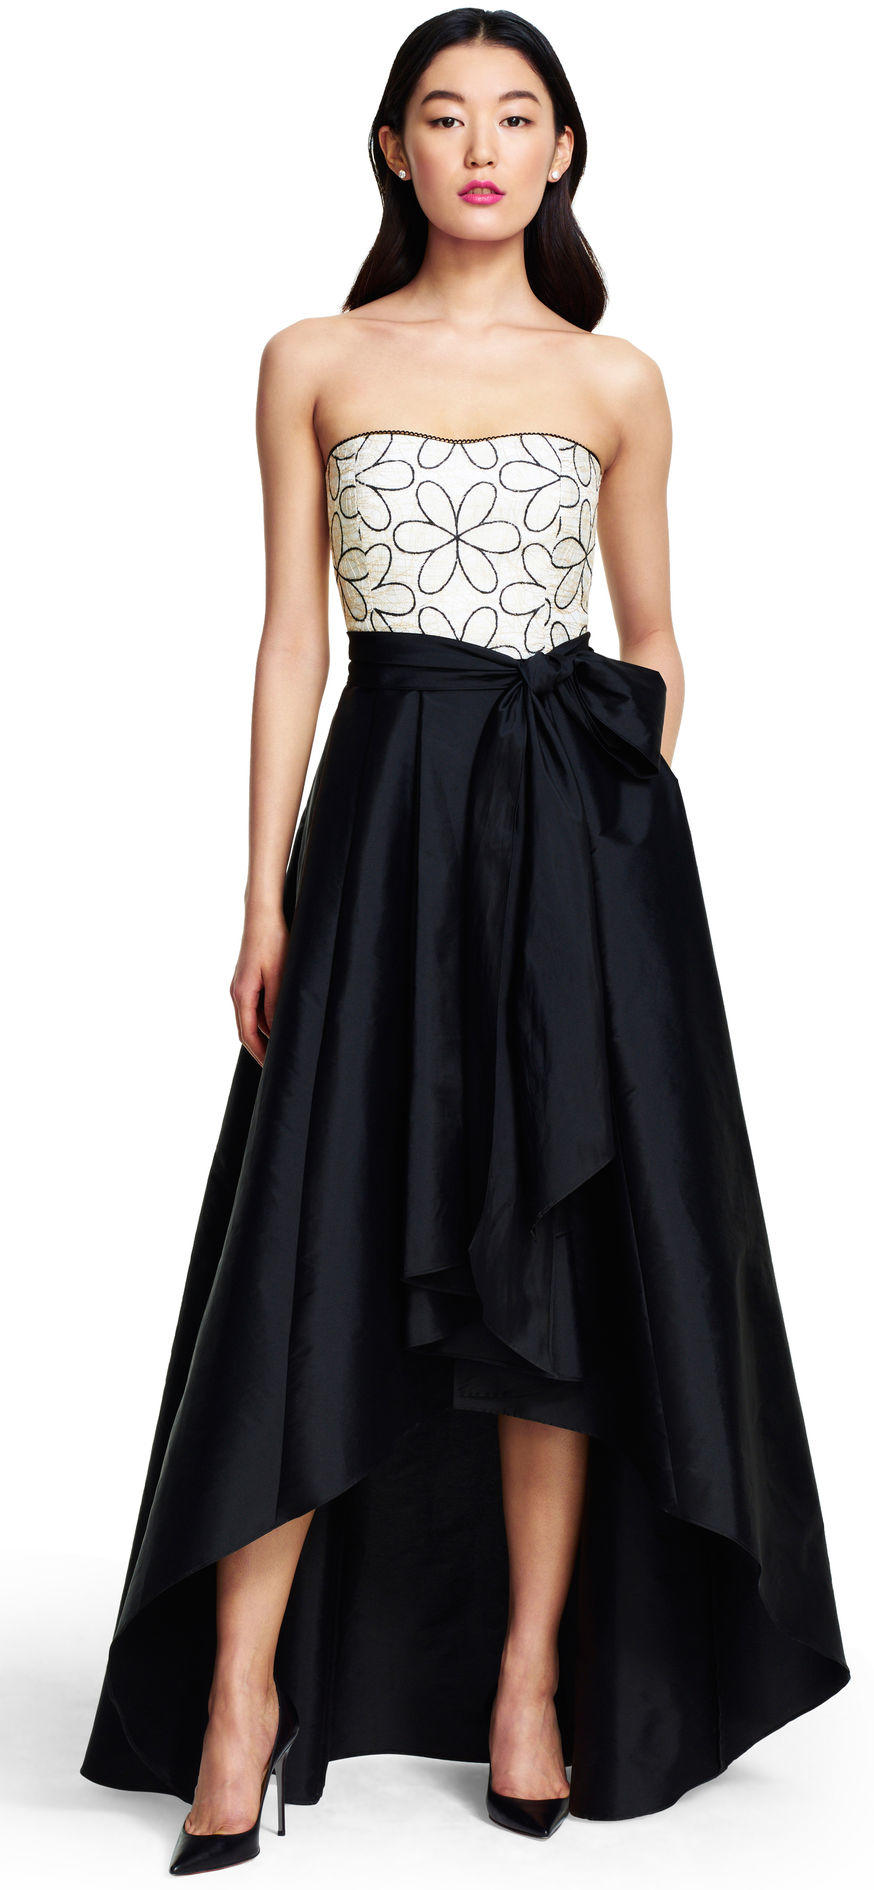 Strapless Taffeta High Low Ball Gown From Adrianna